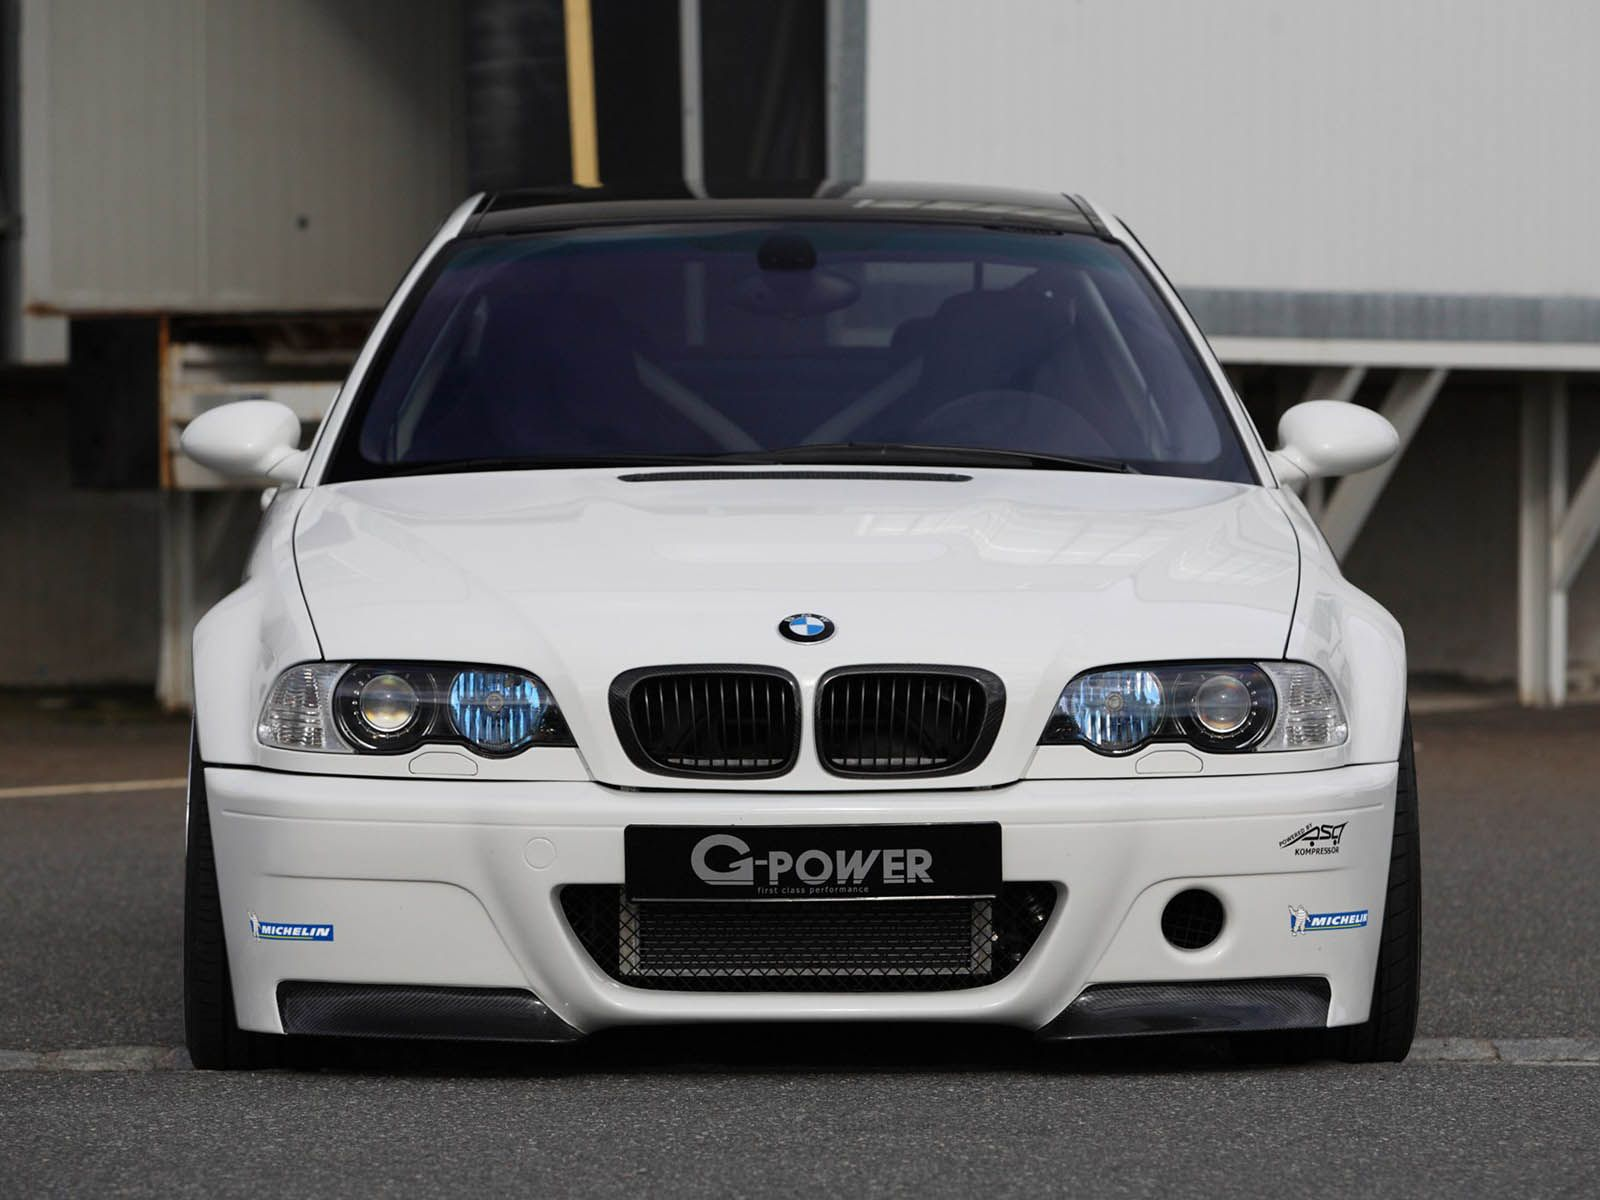 e46 m3 csl tag bmw m3 e46 csl car wallpapers. Black Bedroom Furniture Sets. Home Design Ideas